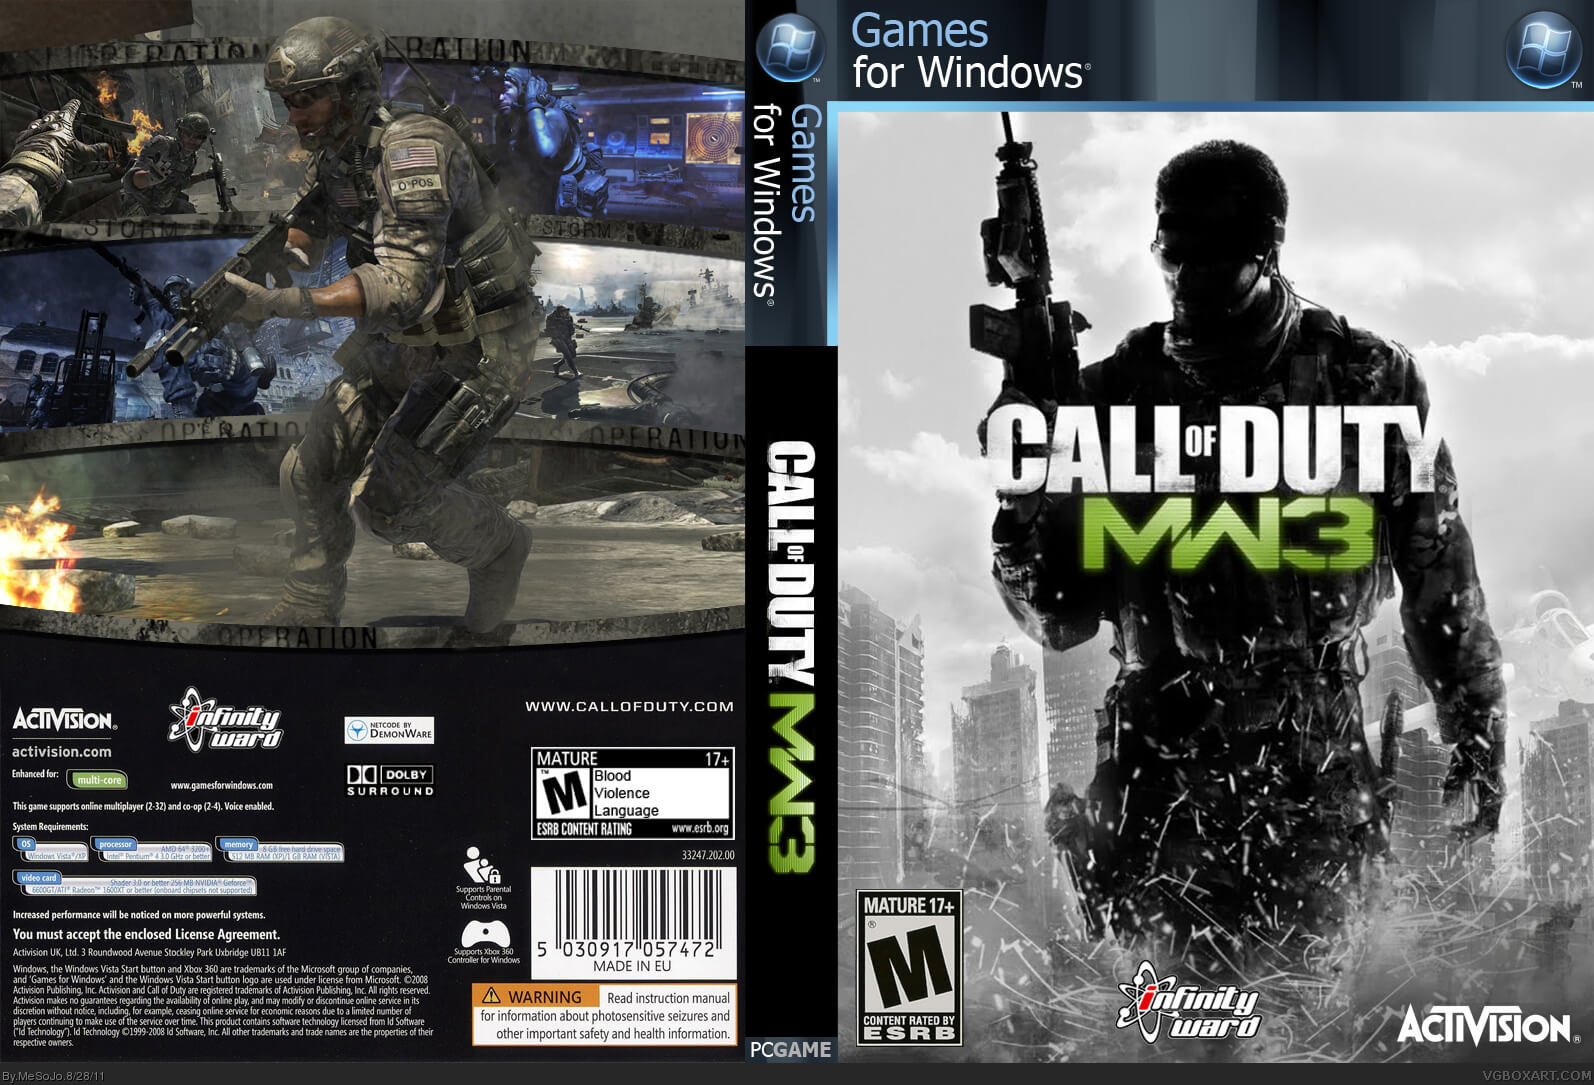 cod mw3 multiplayer download